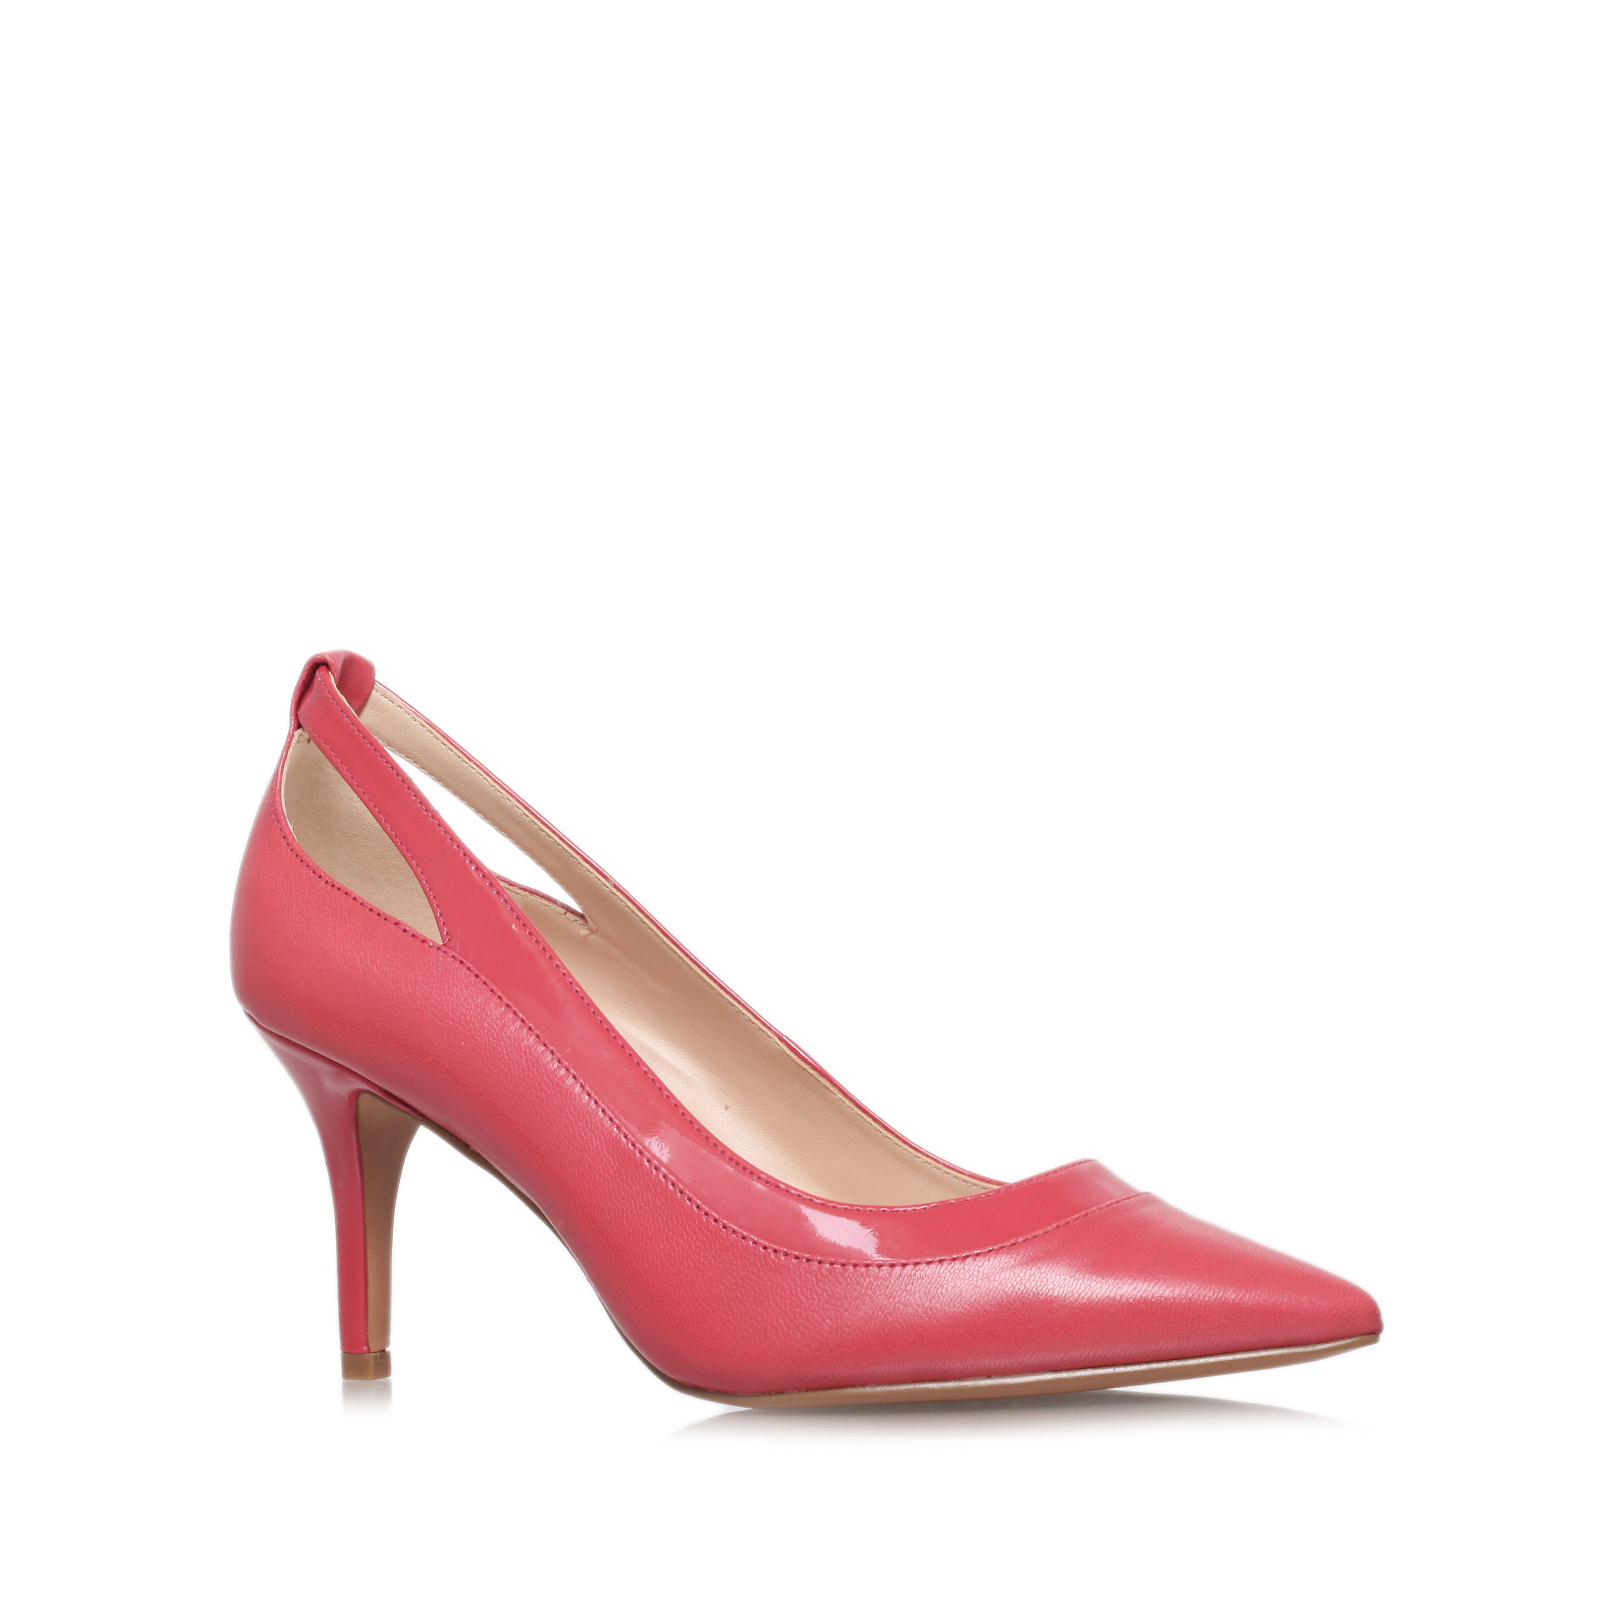 kano nine west kano salmon leather mid heel court shoes by